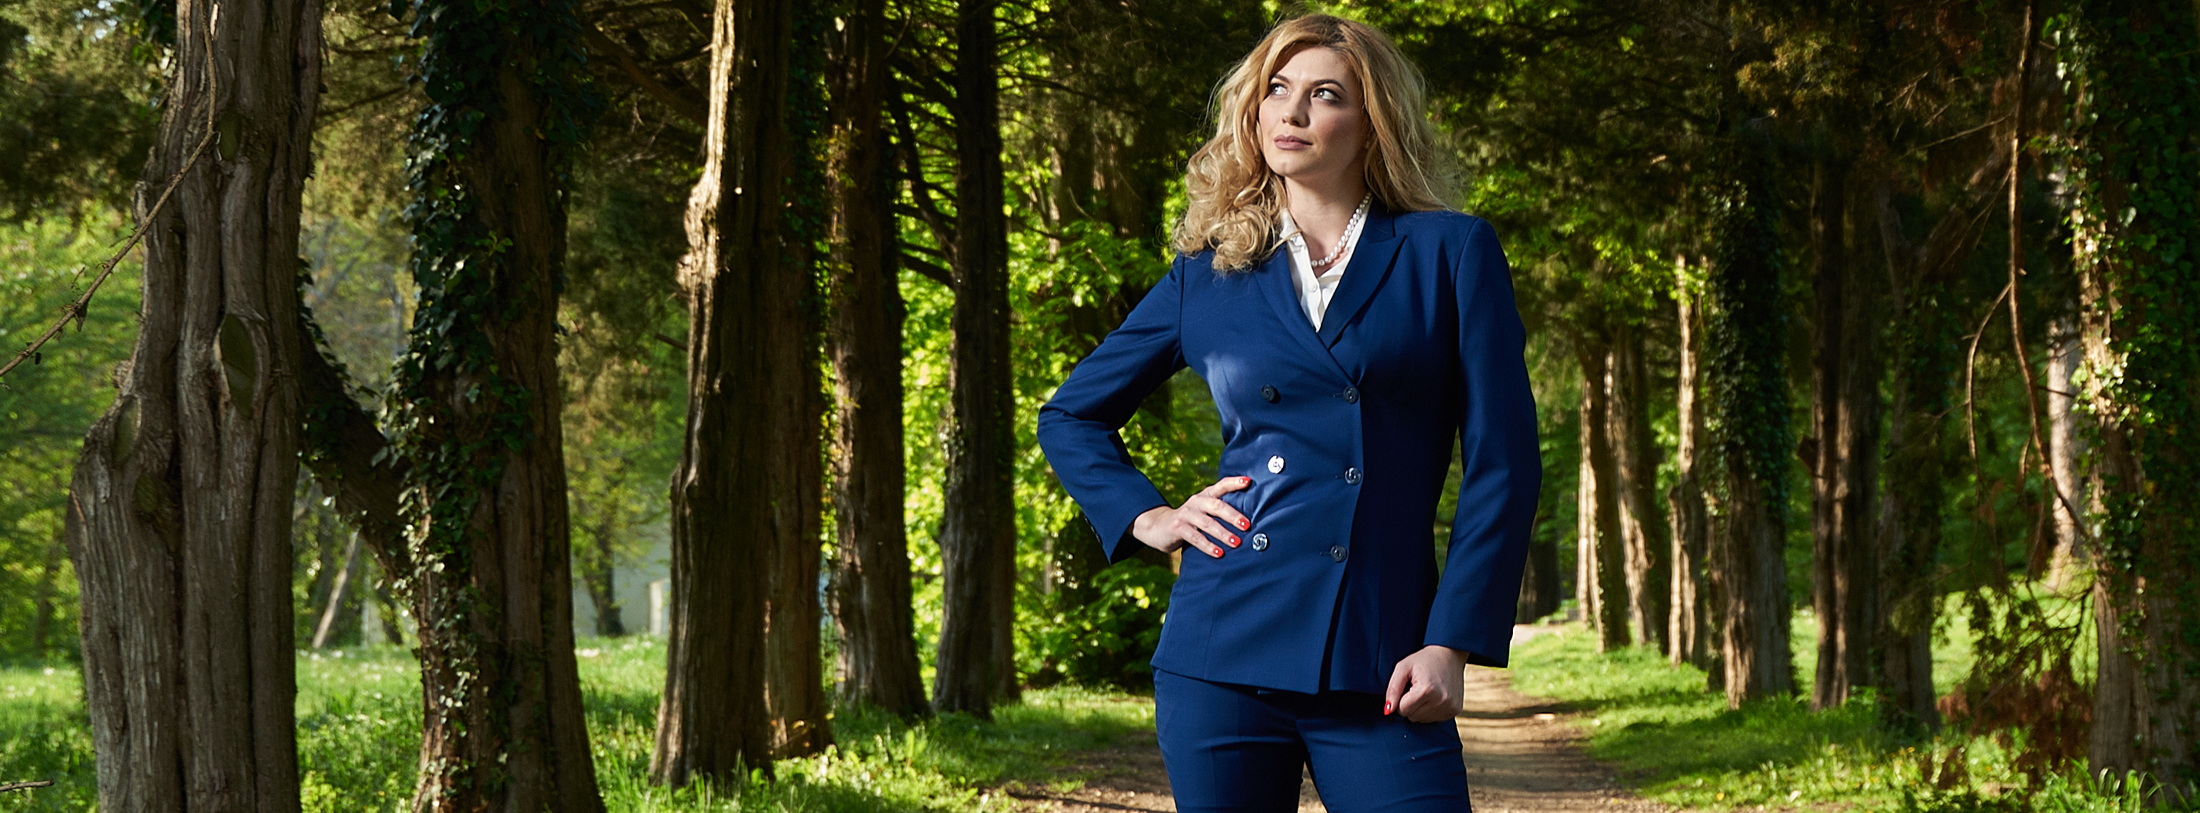 Woman wearing the business suit Hortense in the park